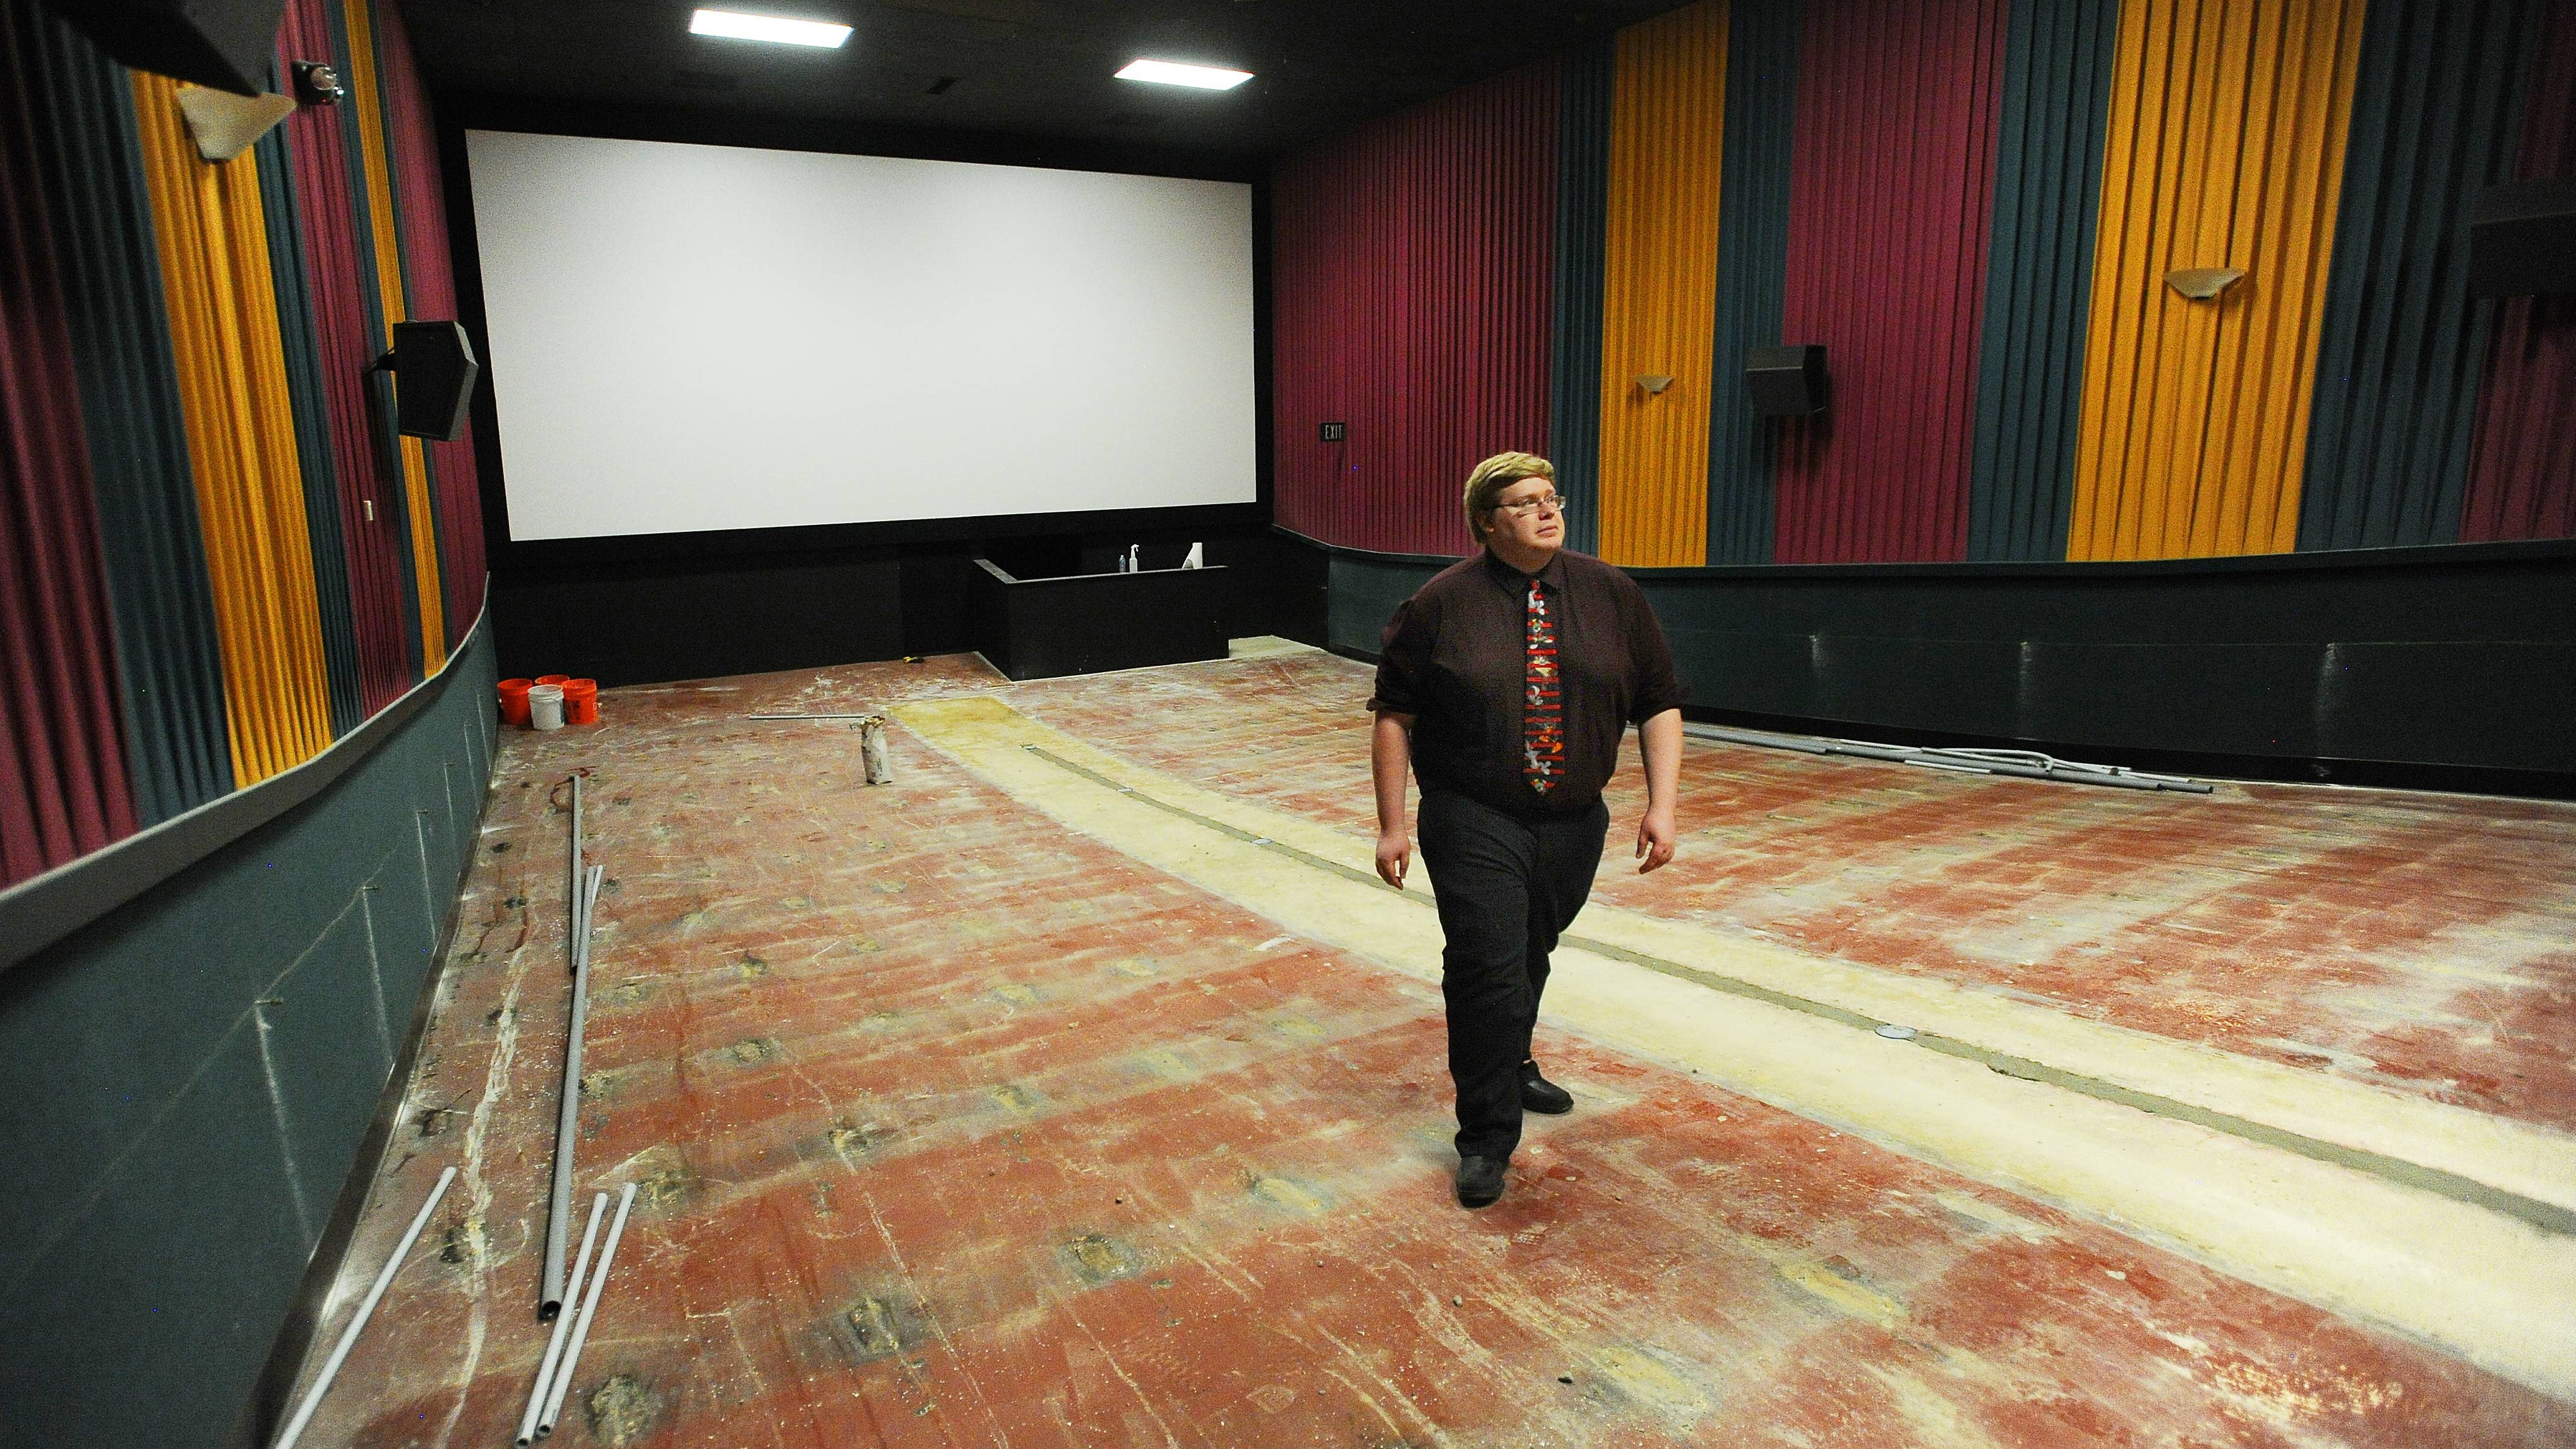 General Manager Andy Dvorak of Ogden 6 theaters in Naperville checks out one of the unfinished theaters that will host new heated reclining chairs to watch first-run movies.